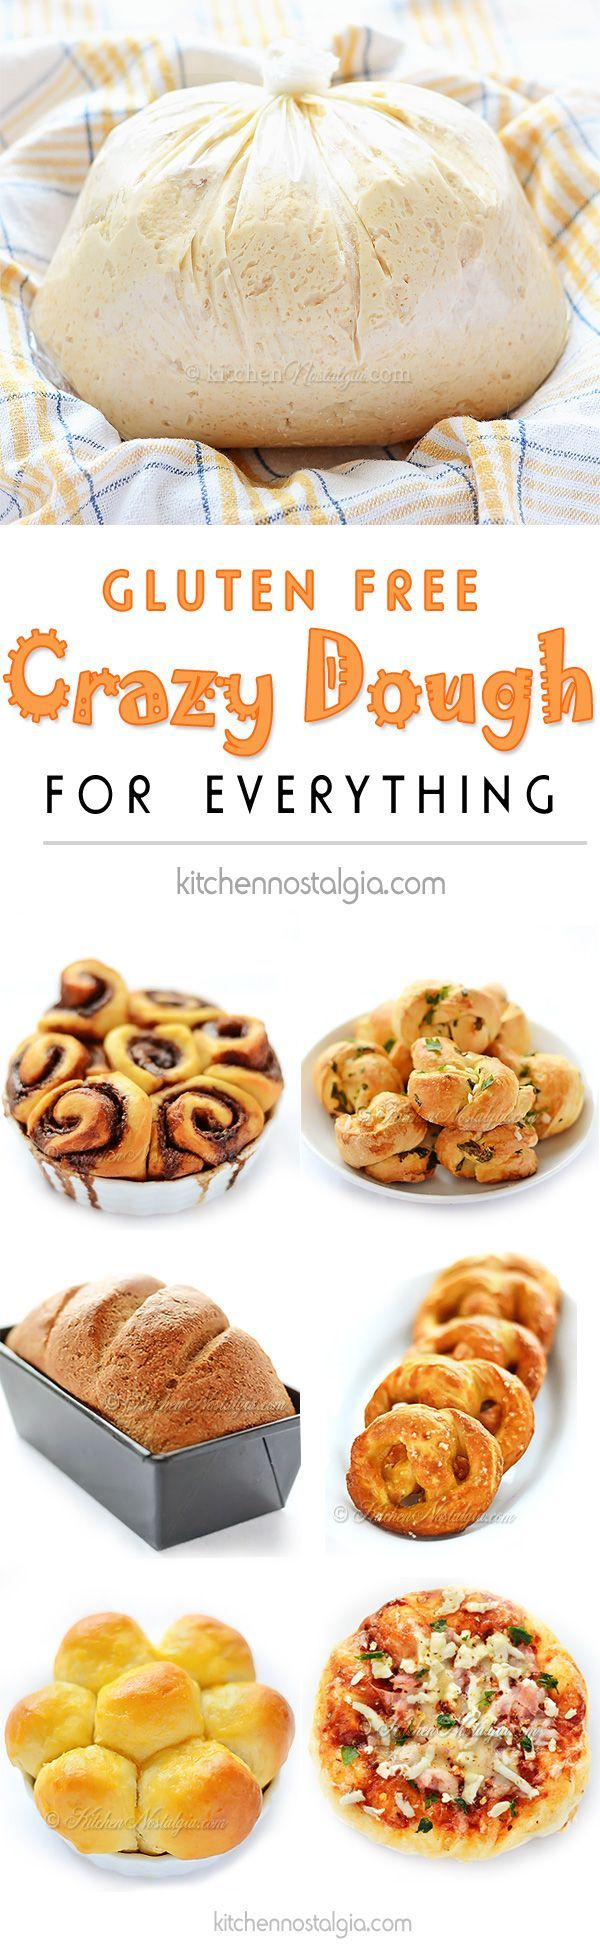 Gluten-Free Crazy Dough - make one miracle dough, keep it in your fridge and use it for anything you like: bread, pizza, dinner rolls, cinnamon rolls etc.